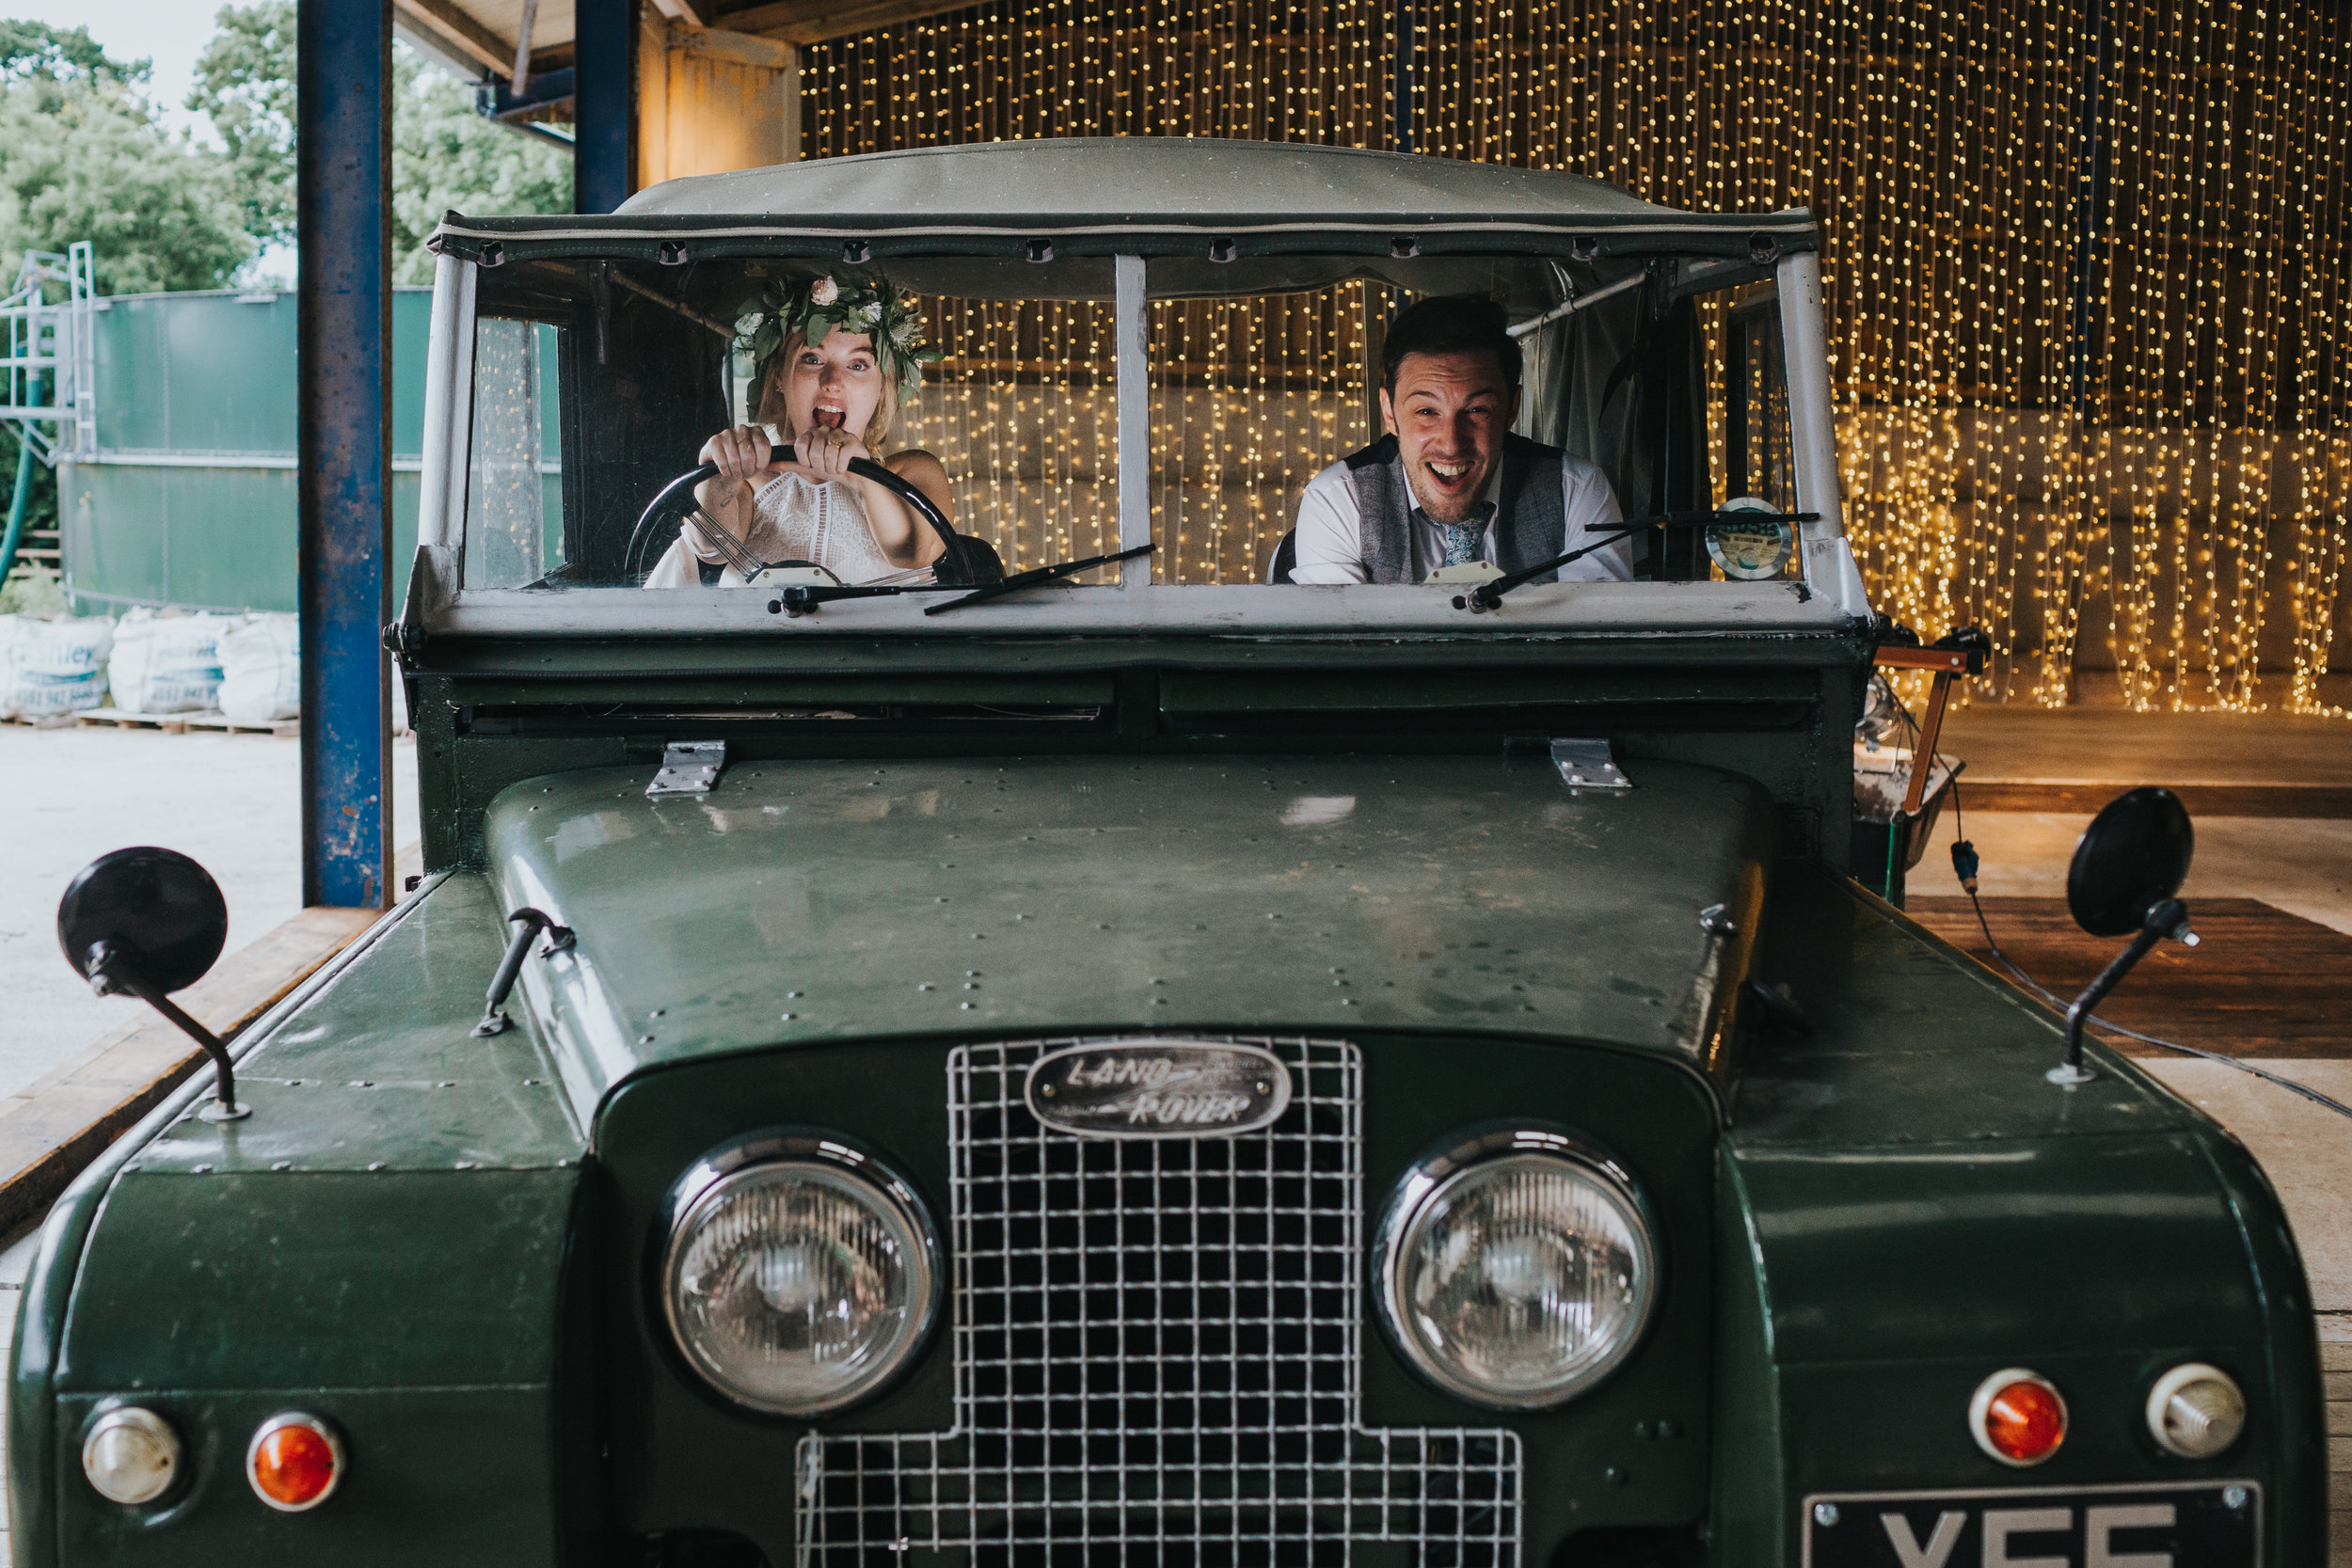 The bride and groom take the land rover for a spin. The bride is driving, but doesn't have a license. Everyone looks scared.